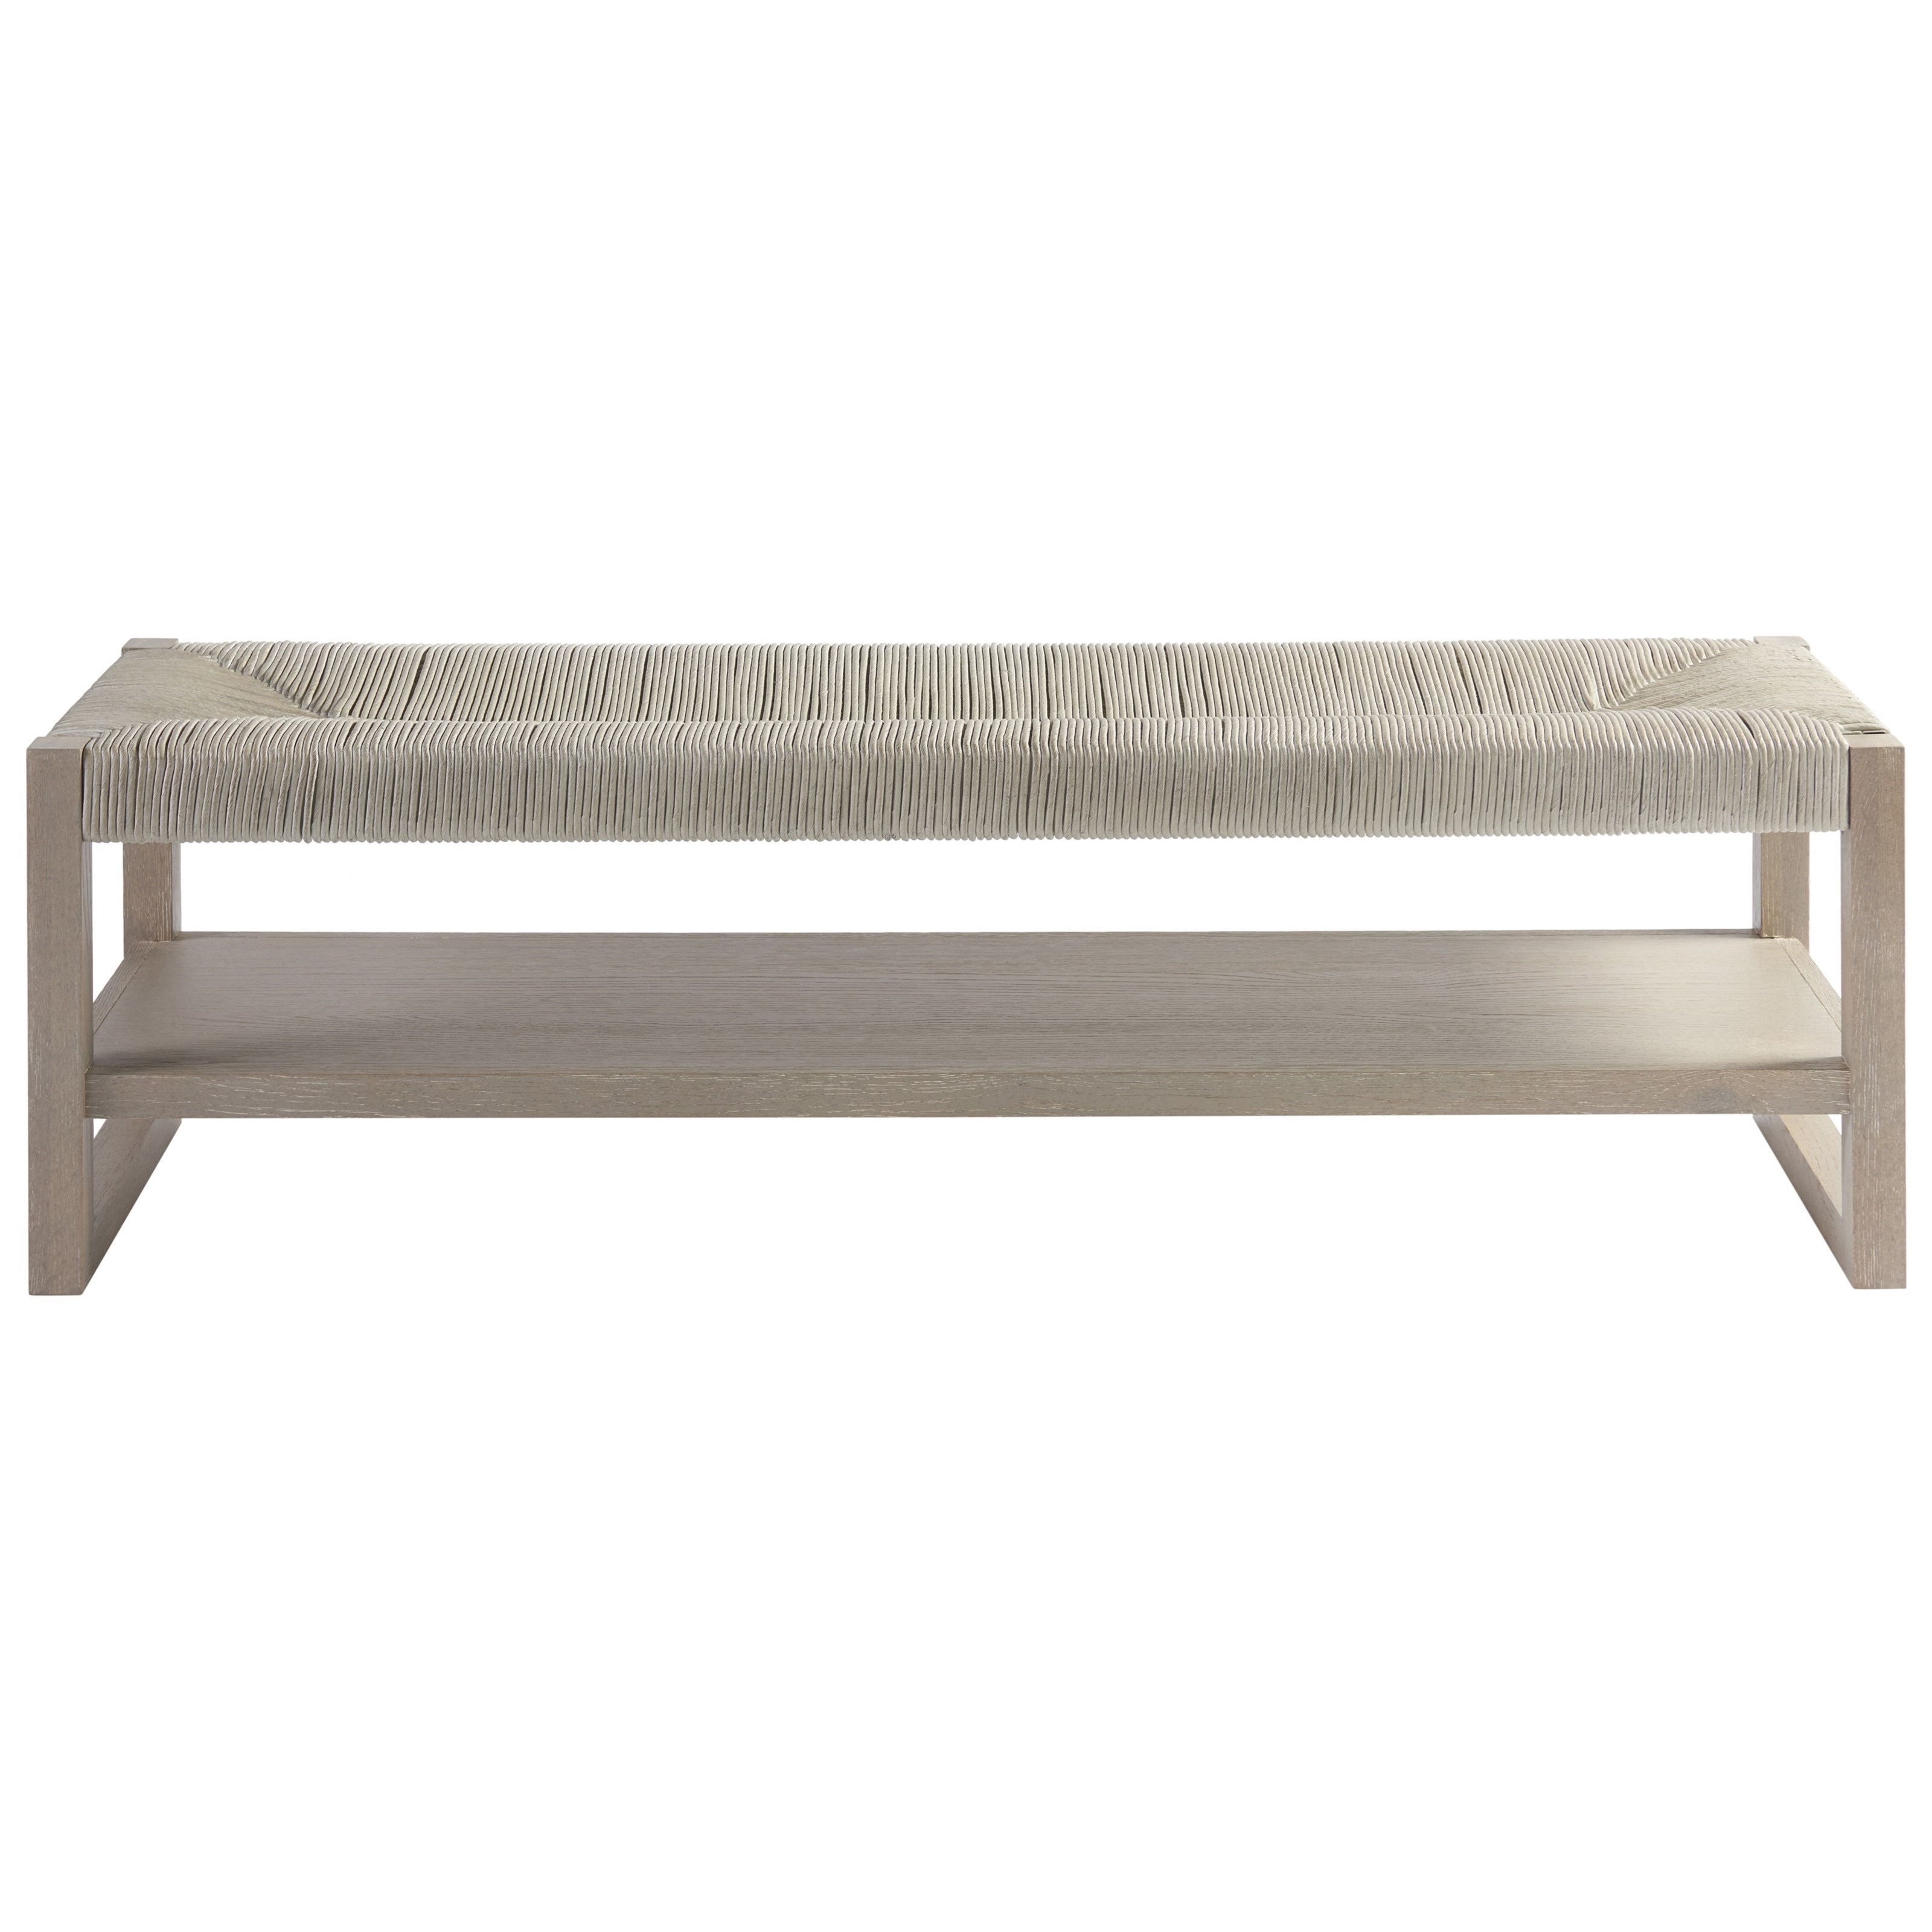 Zephyr Bed End Bench by Universal at Powell's Furniture and Mattress